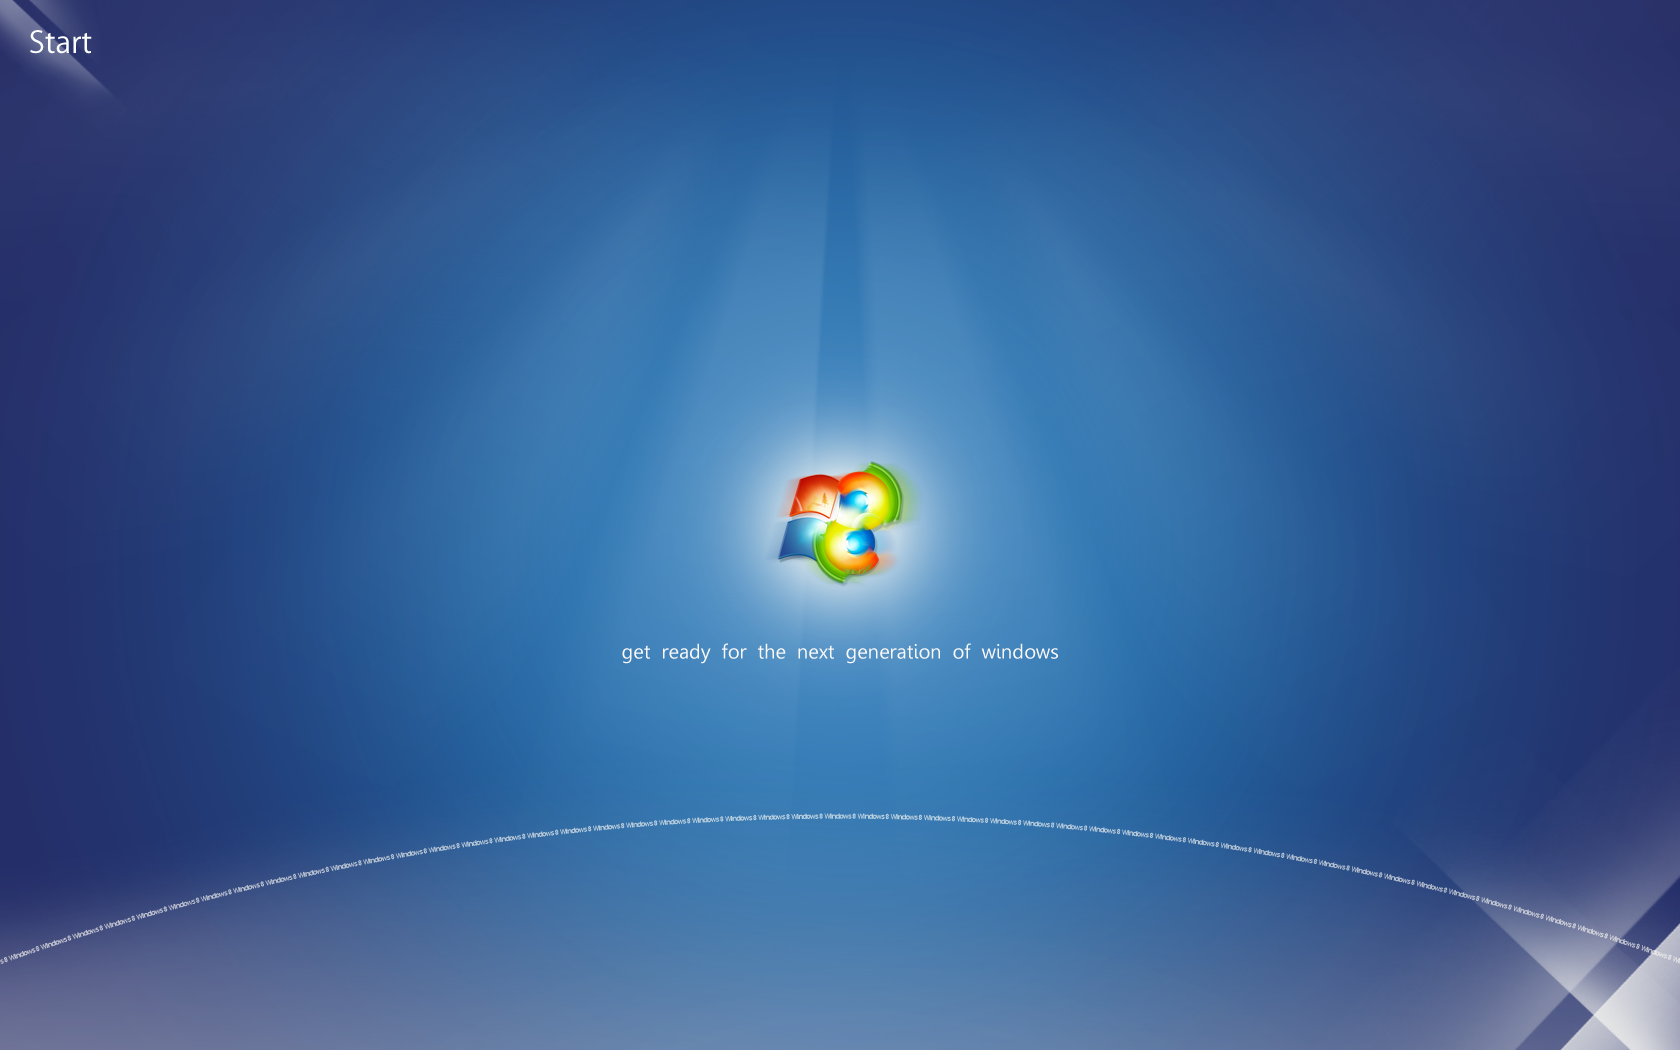 Windows 8 The Official Review: 30 Beautiful Windows 8 Wallpapers In High Quality